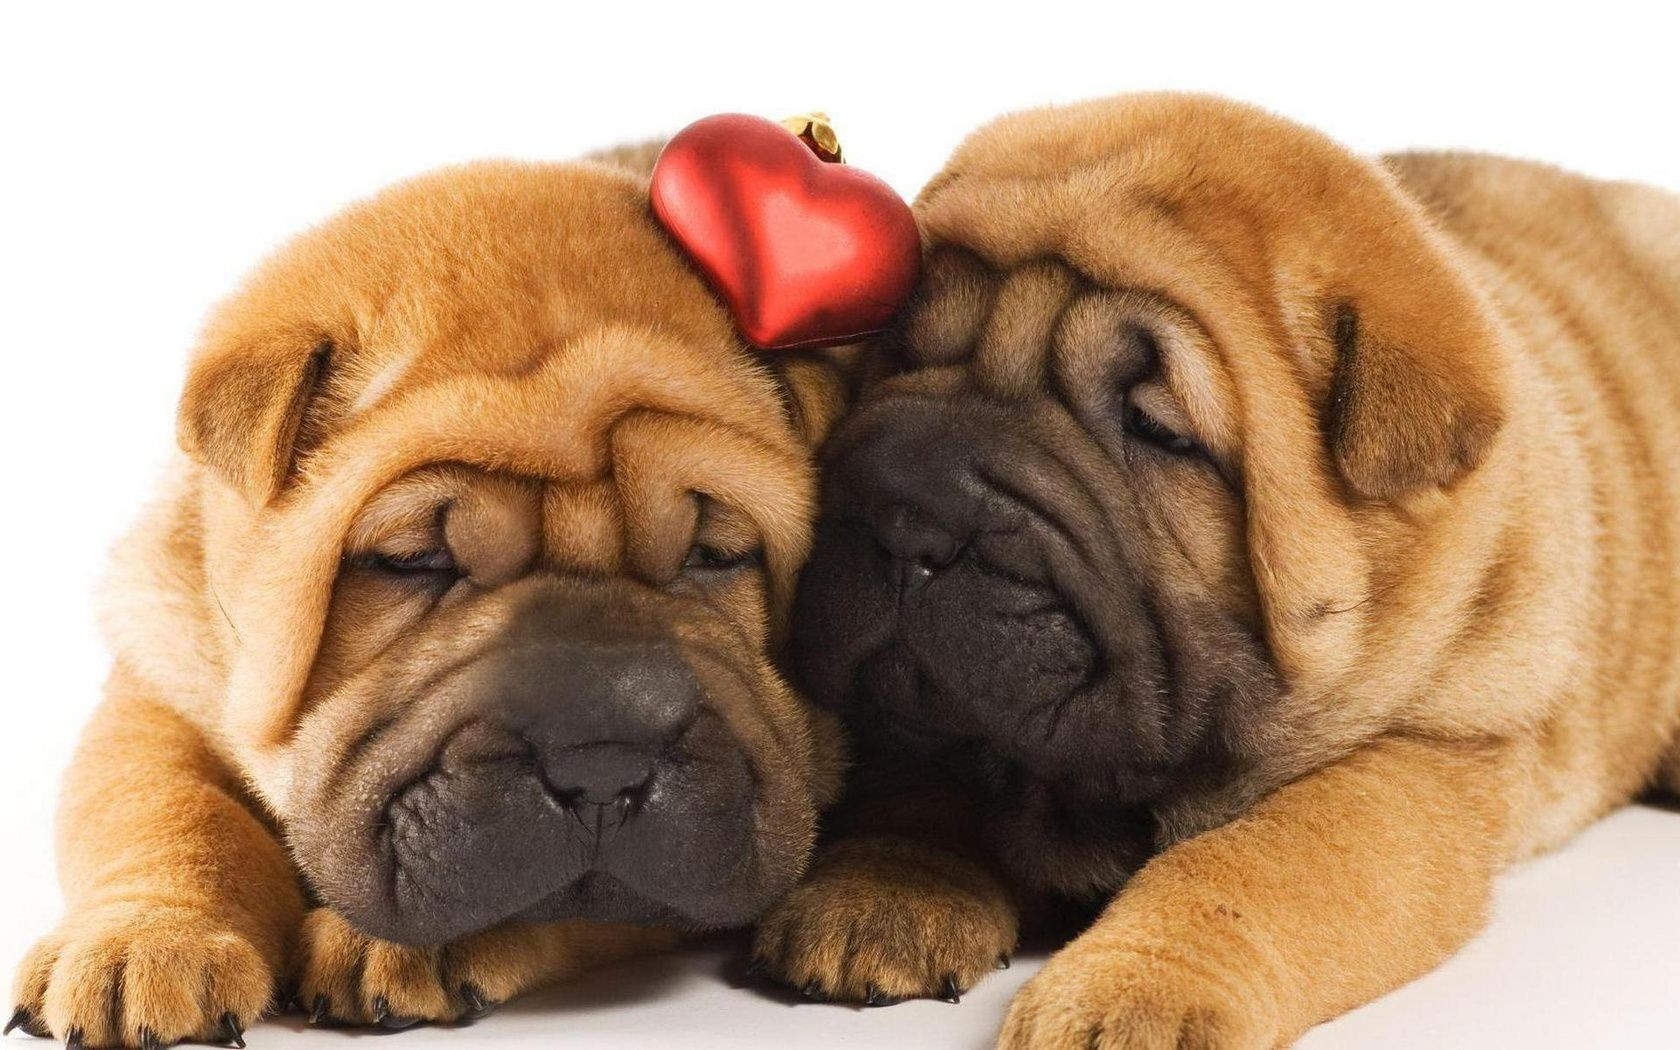 Situation Puppies Sleep A Shar Pei Sleeping Android Wallpapers For Free